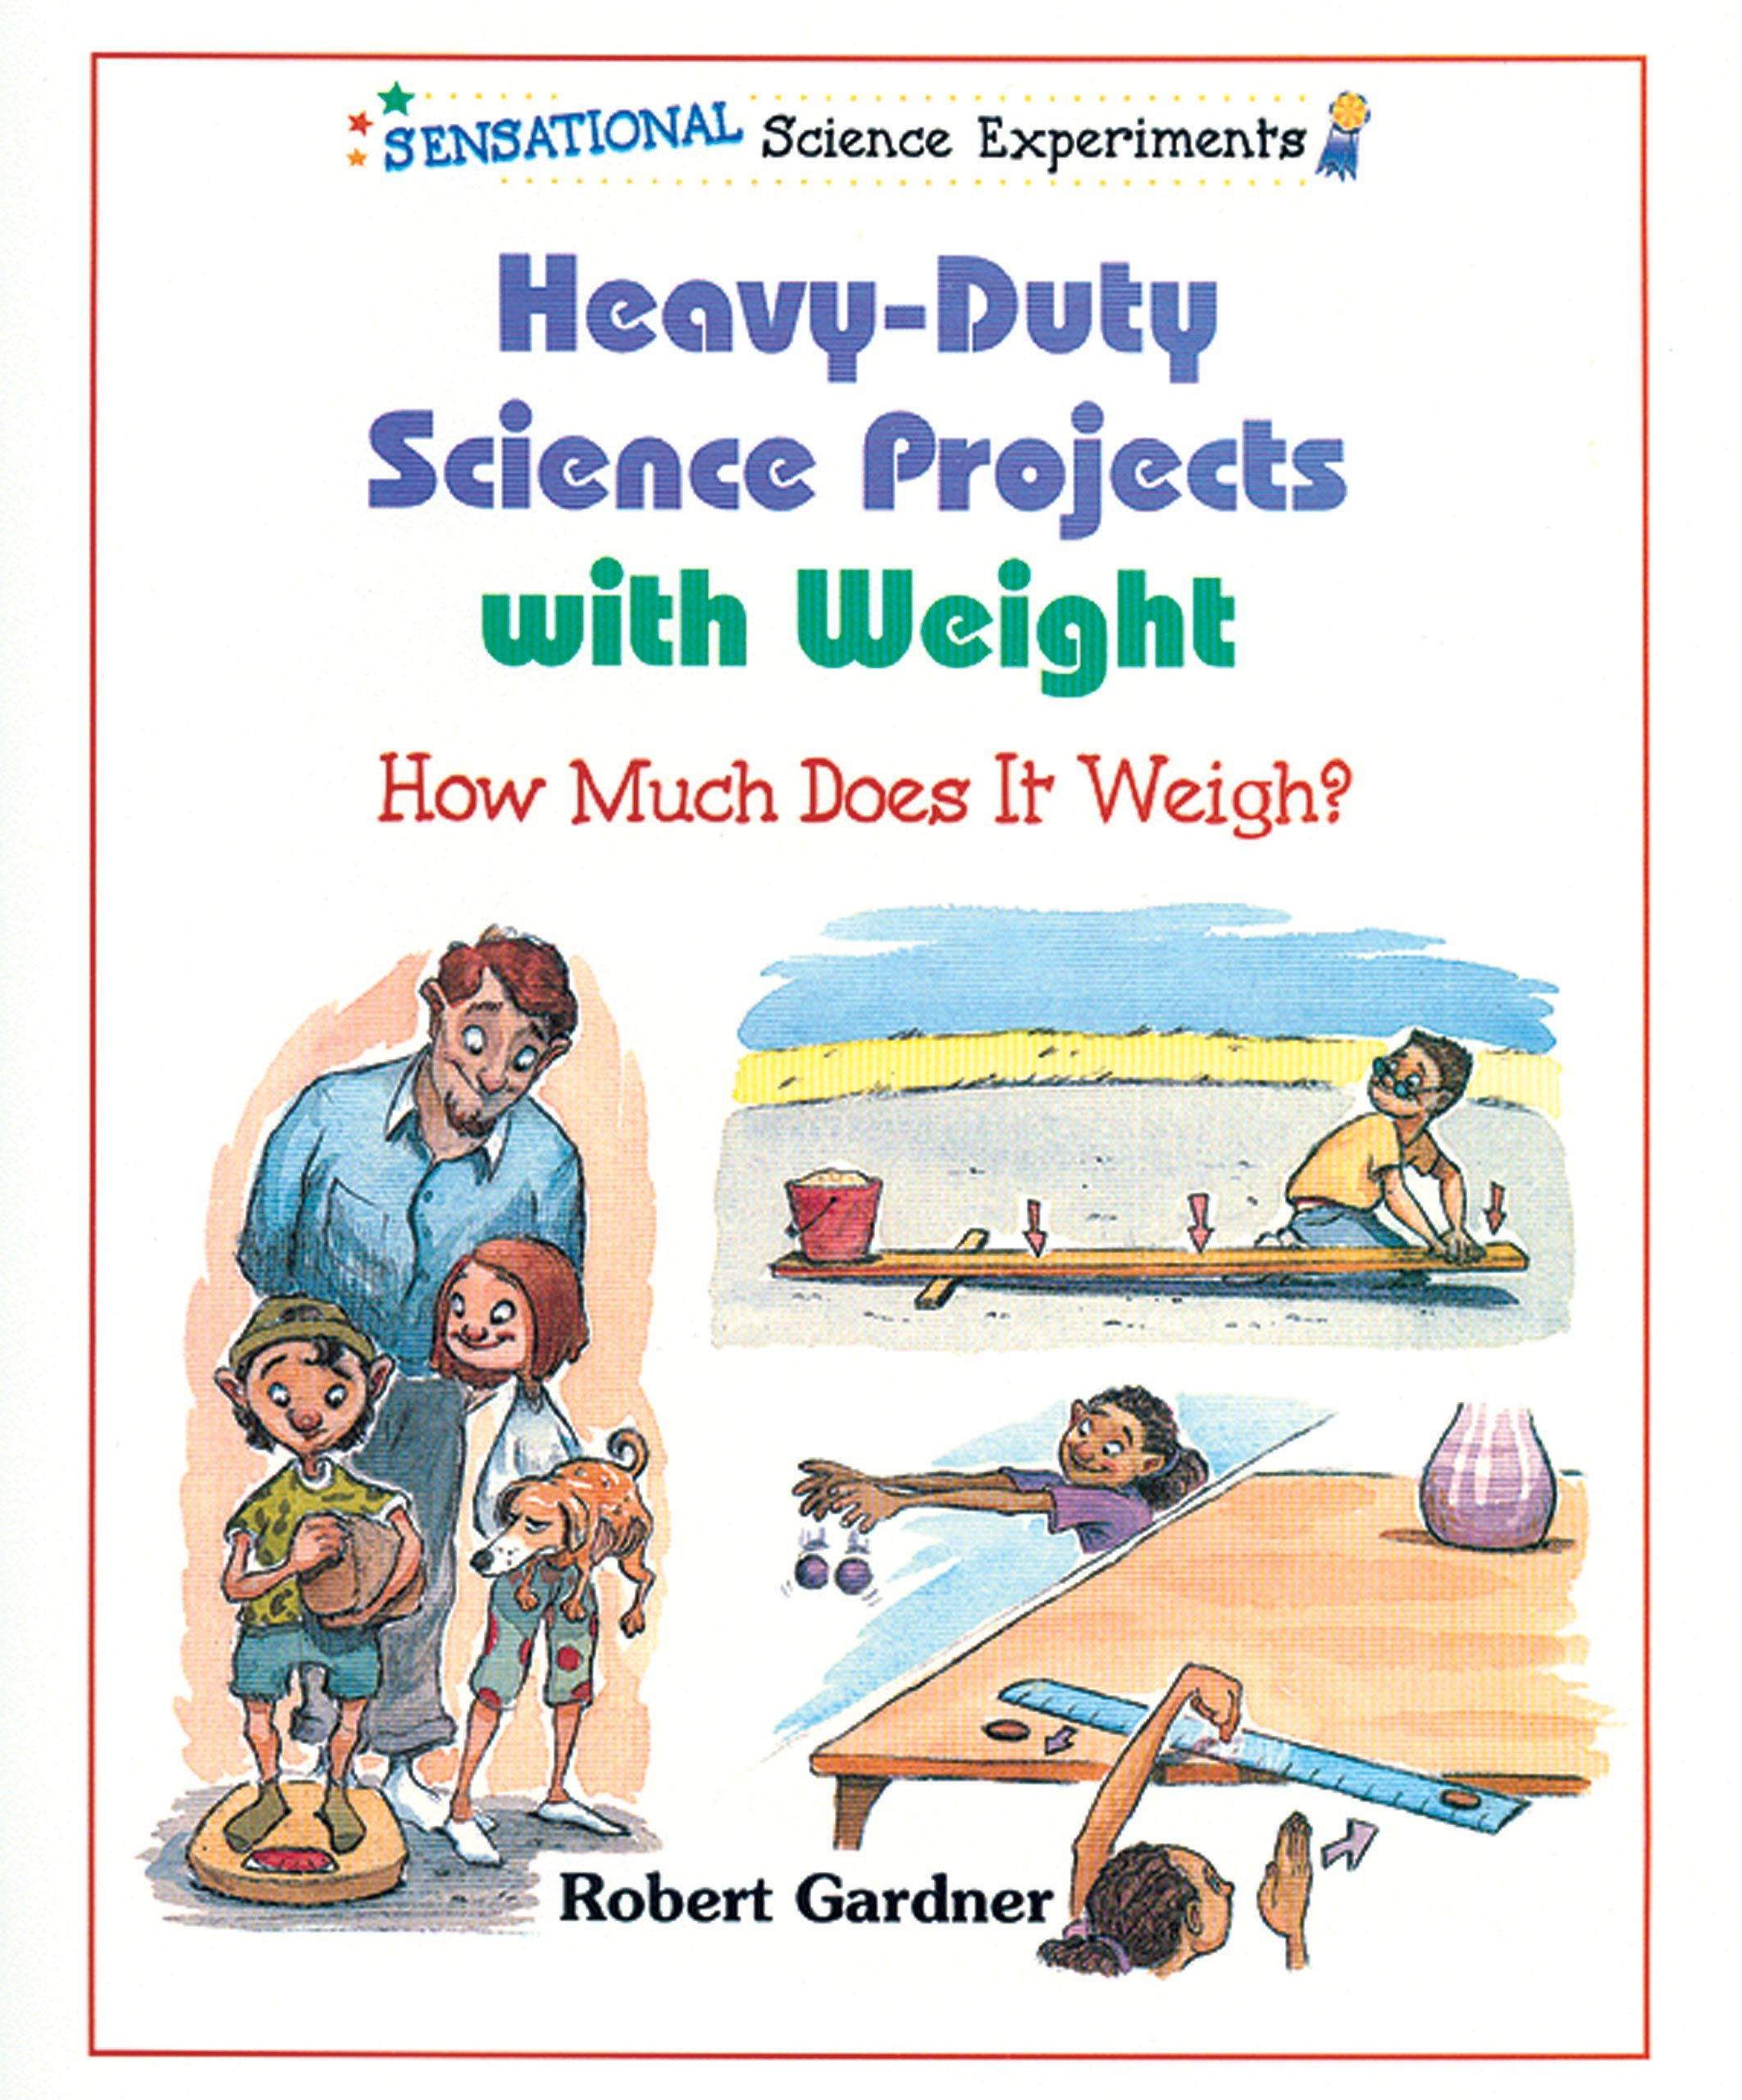 Read Online Heavy-Duty Science Projects With Weight: How Much Does It Weigh (Sensational Science Experiments) ePub fb2 book